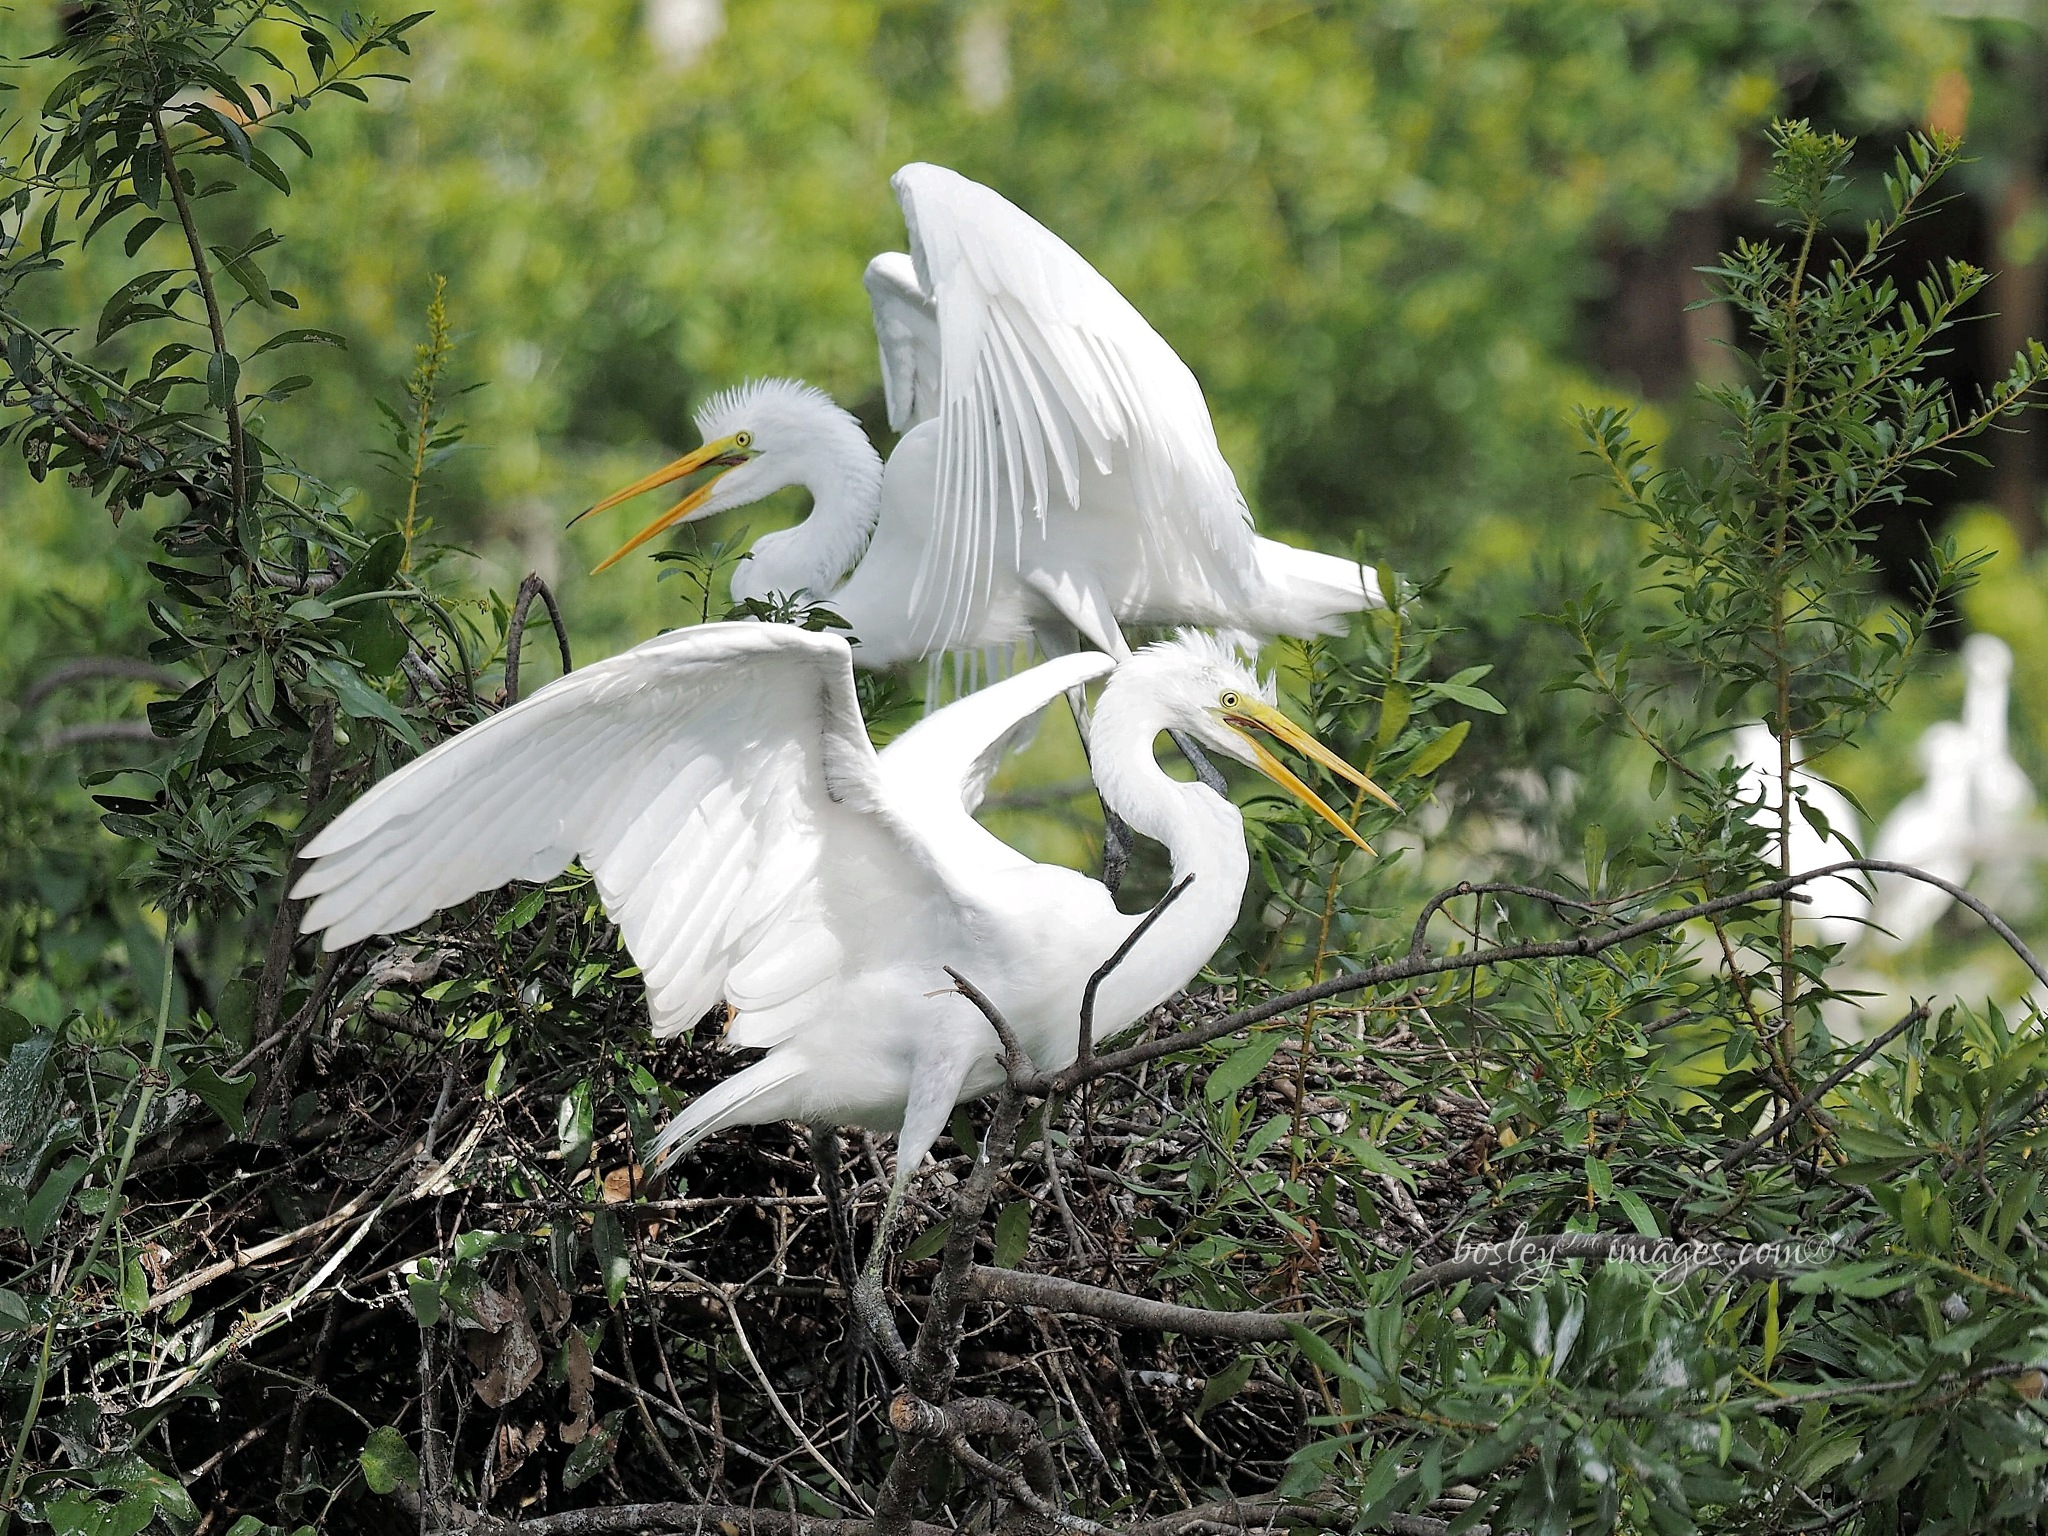 Great White Egret chicks by william.l.bosley